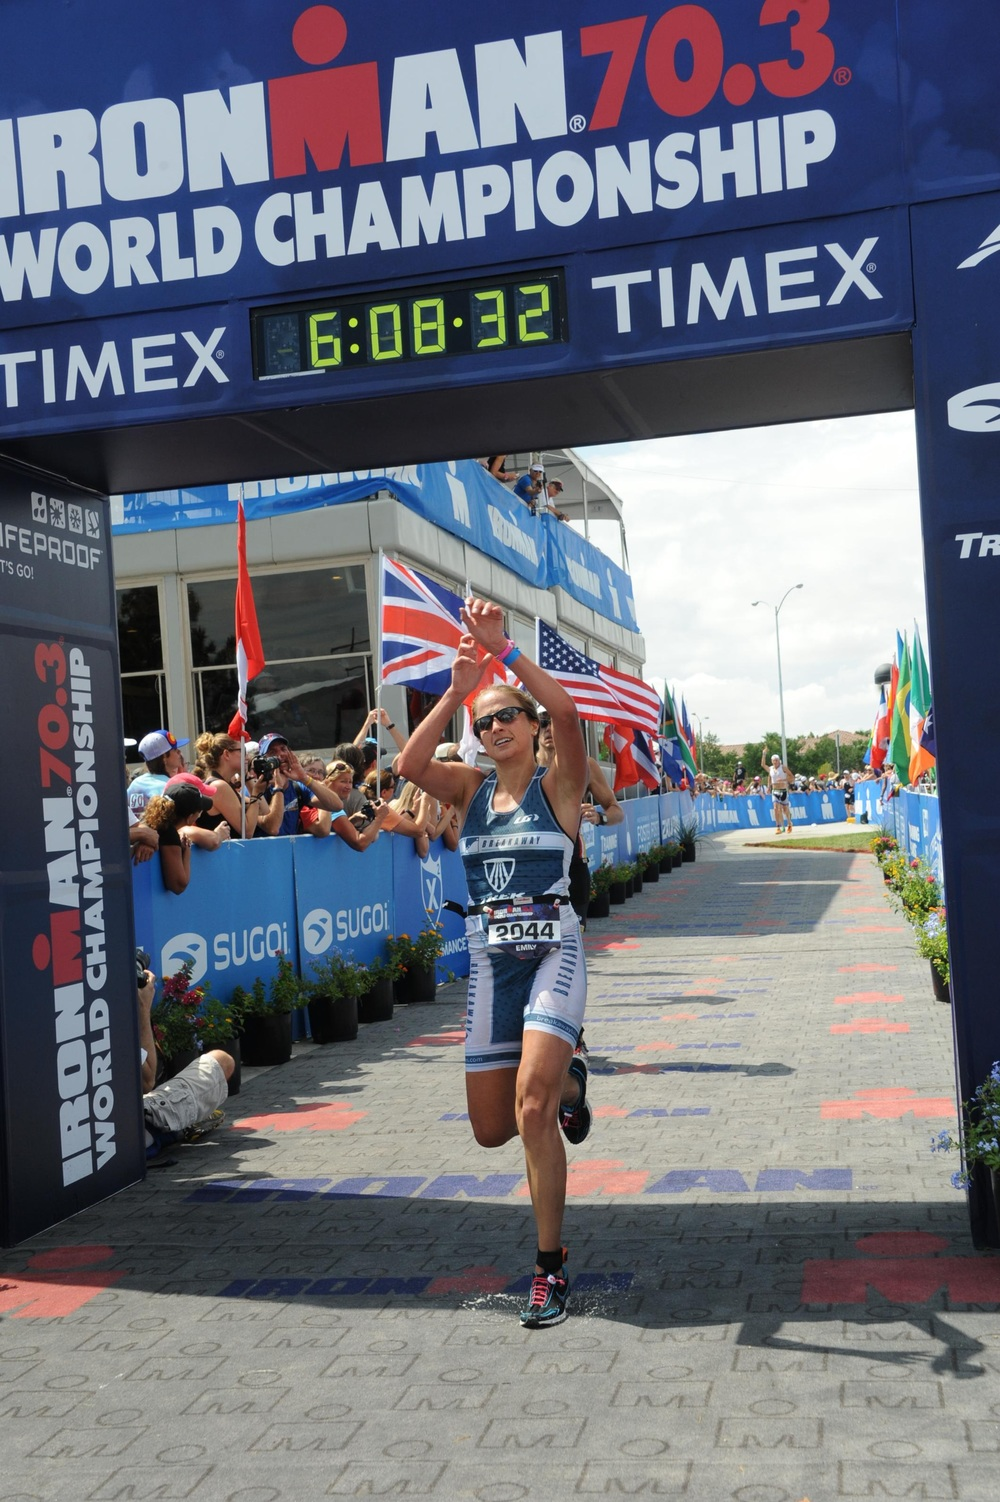 Finish Line at the 70.3 World Championships.